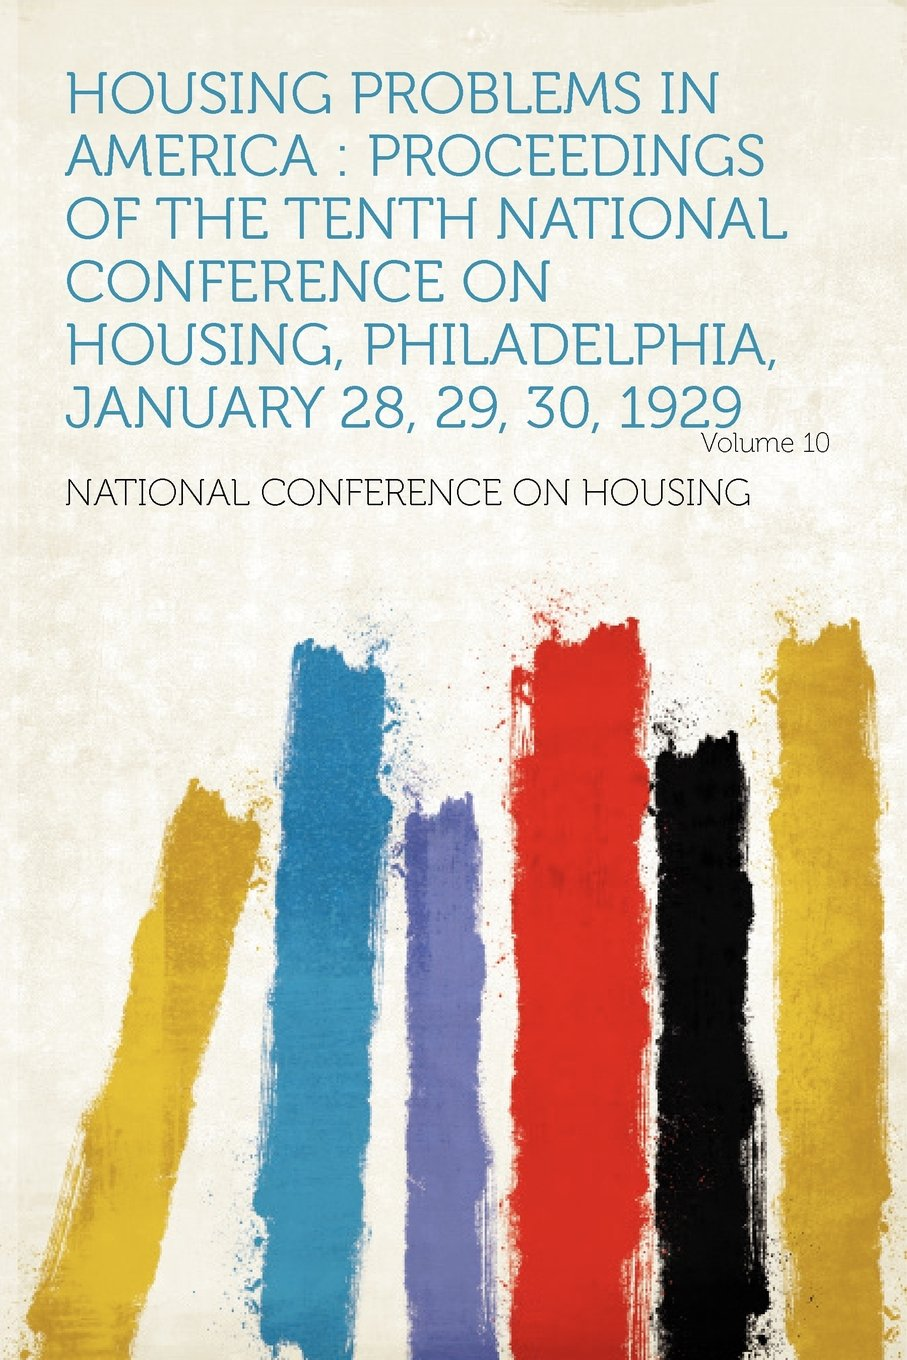 Housing Problems in America: Proceedings of the Tenth National Conference on Housing, Philadelphia, January 28, 29, 30, 1929 Volume 10 pdf